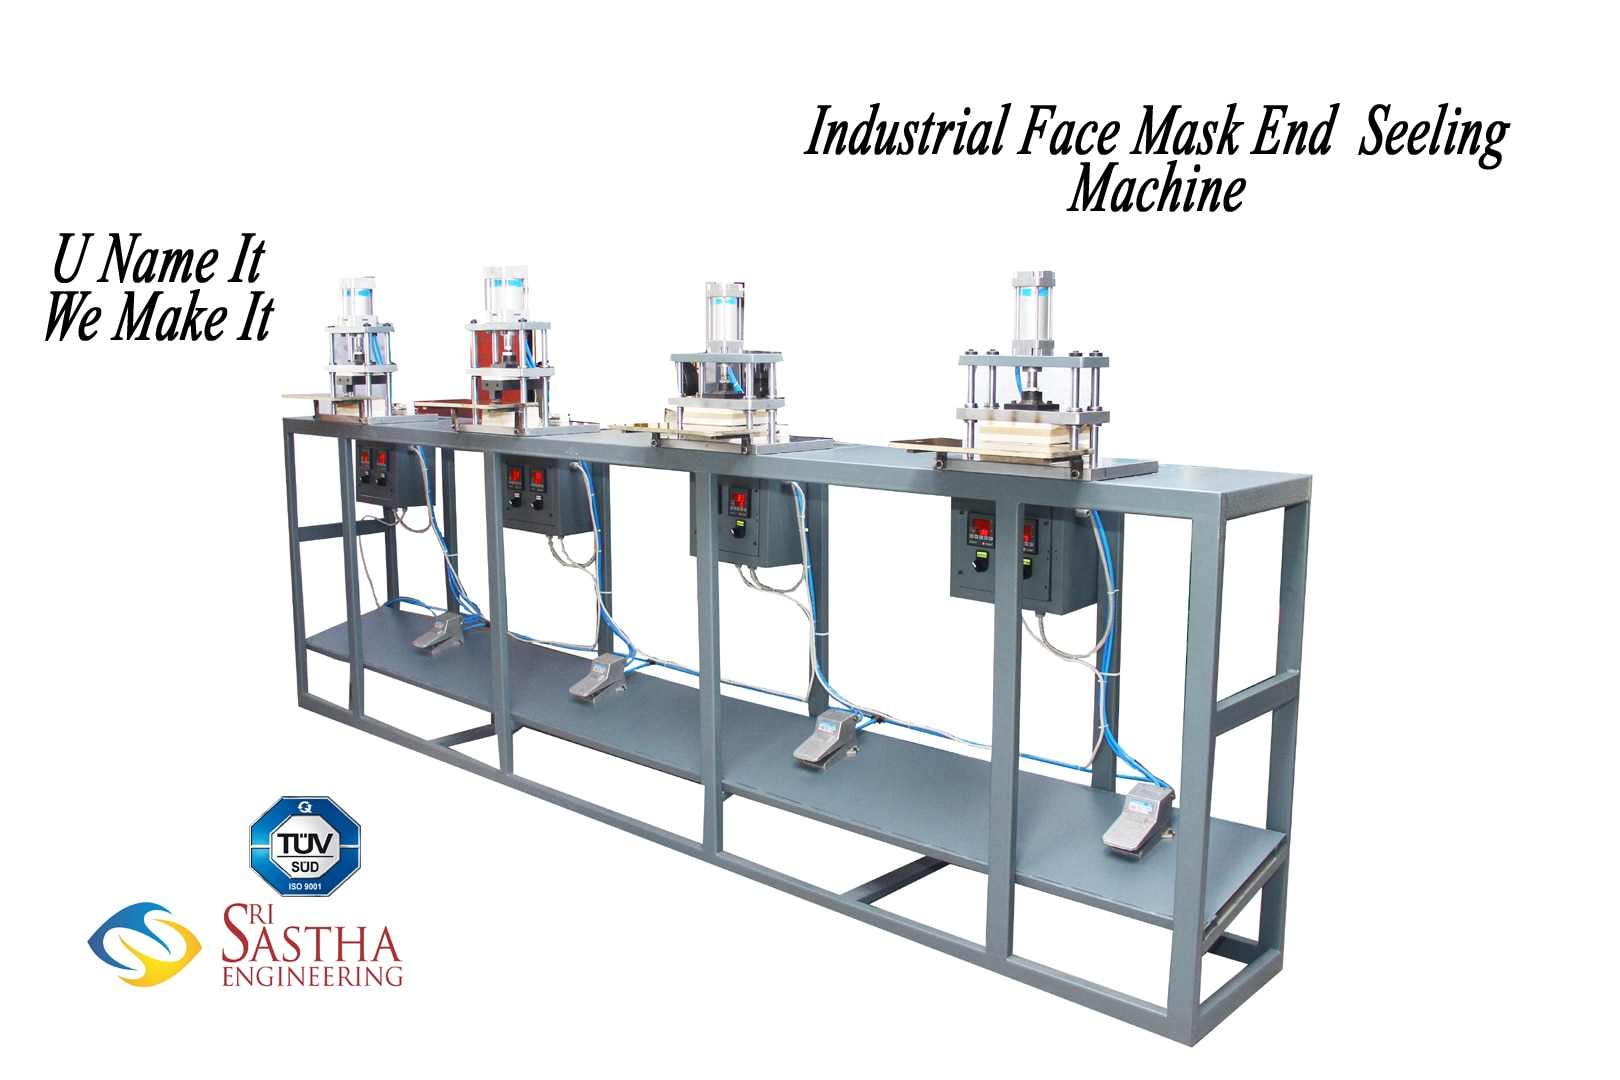 Industrial Face Mask Sealing Machine -Sri Sastha Engineering